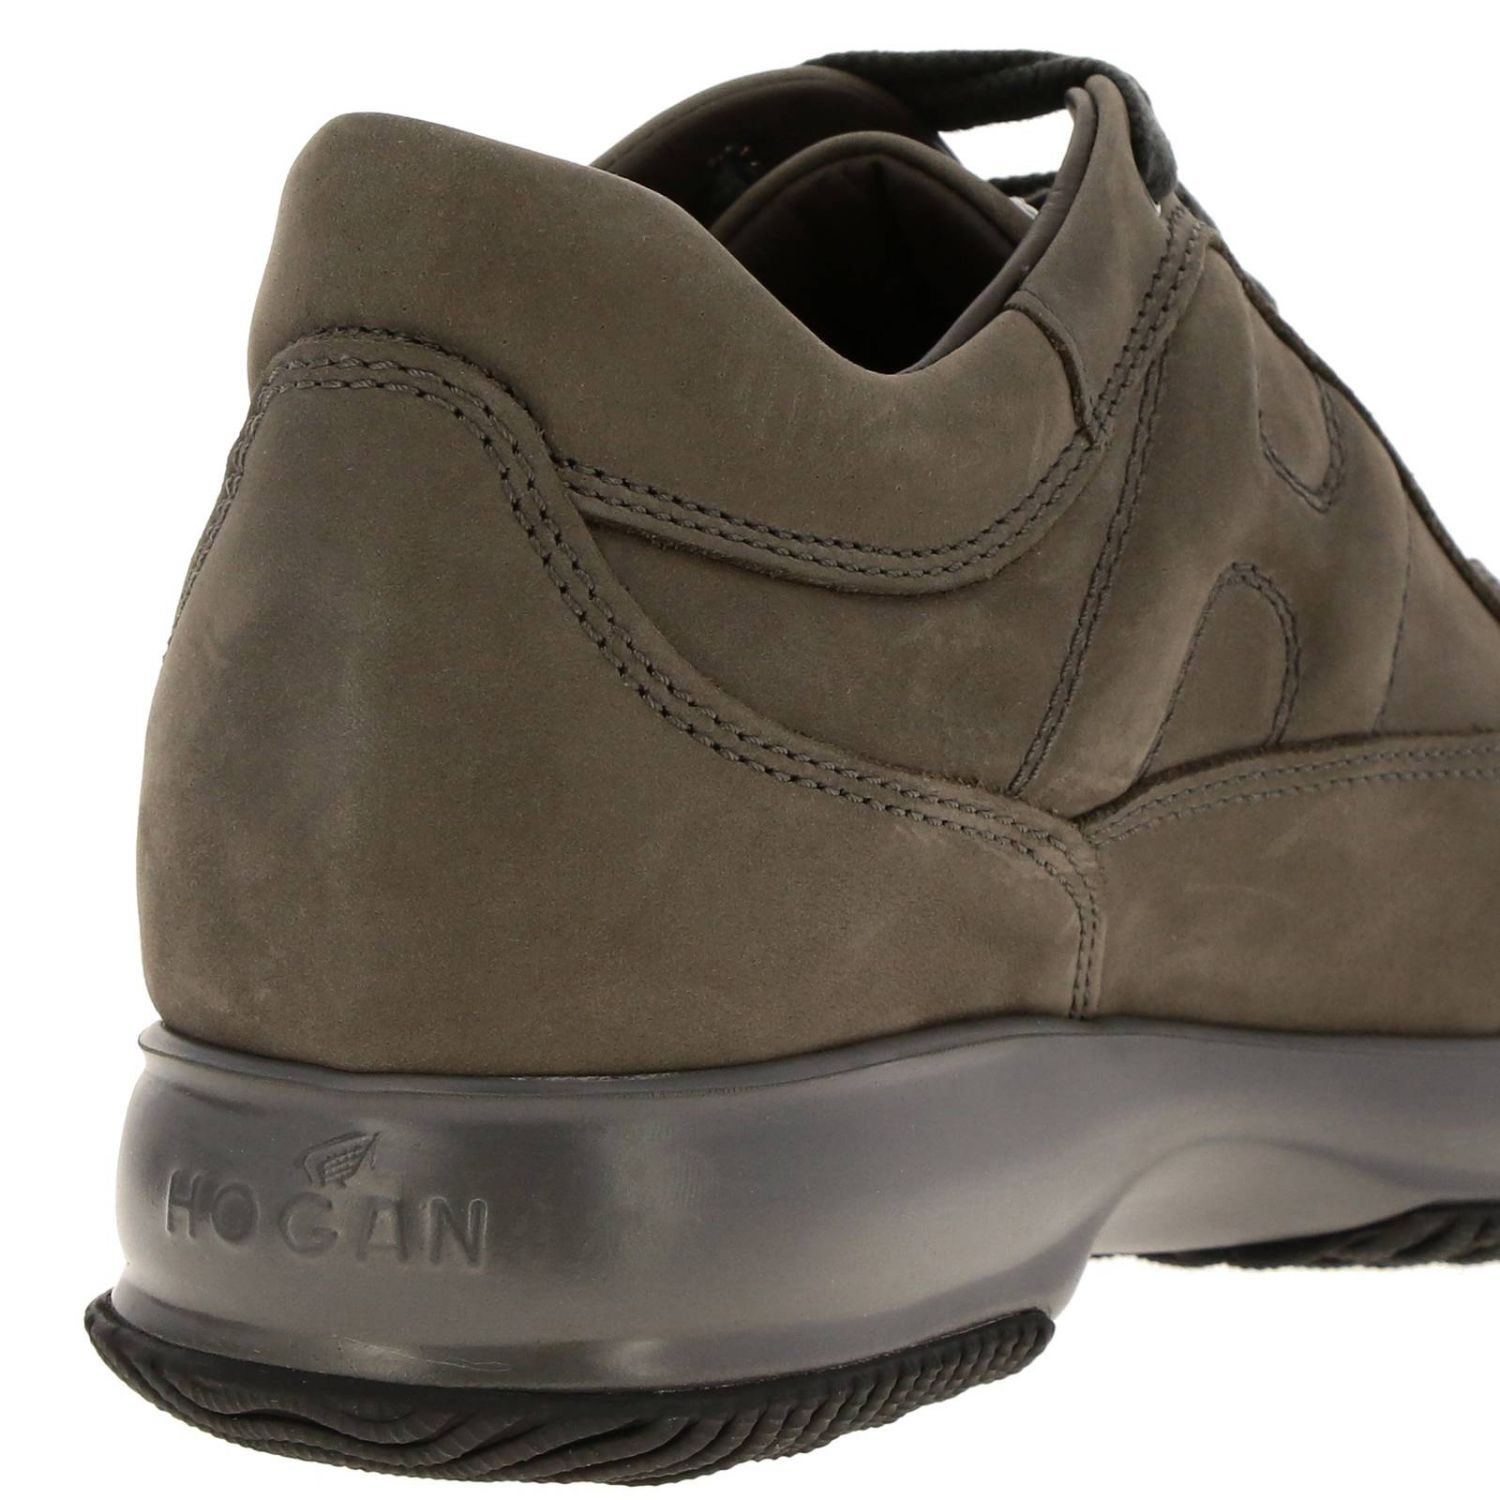 Interactive Hogan nubuck sneakers with rounded H mud 4